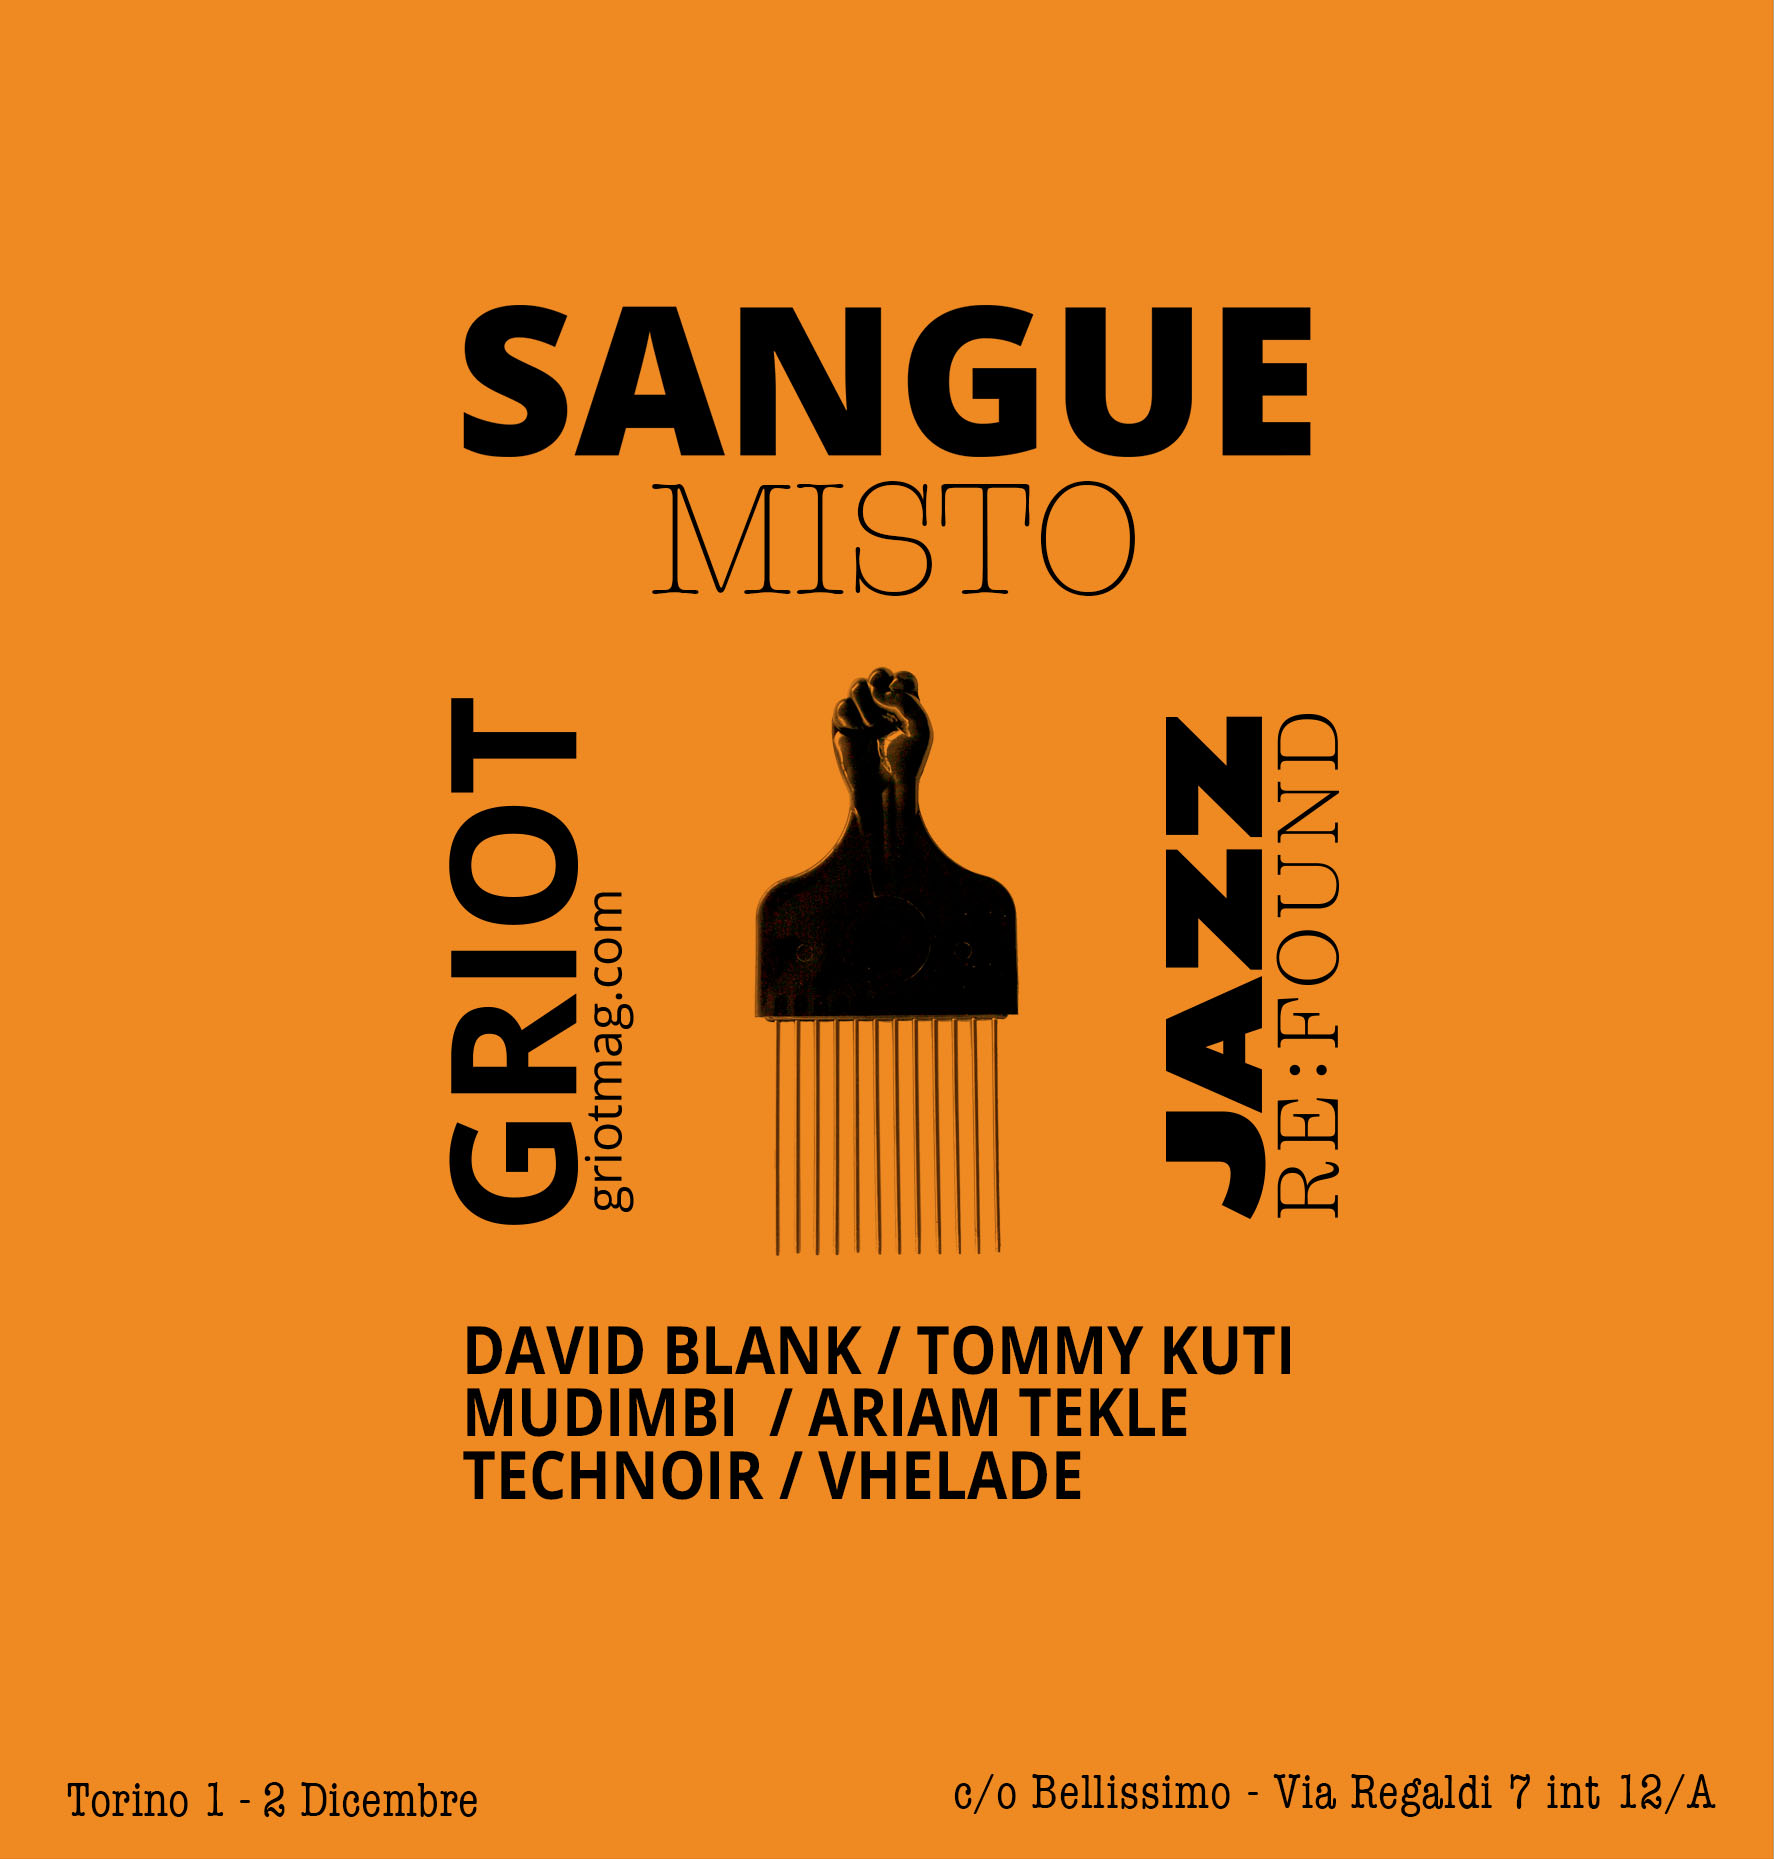 GRIOT MAG -sangue misto jazz re found